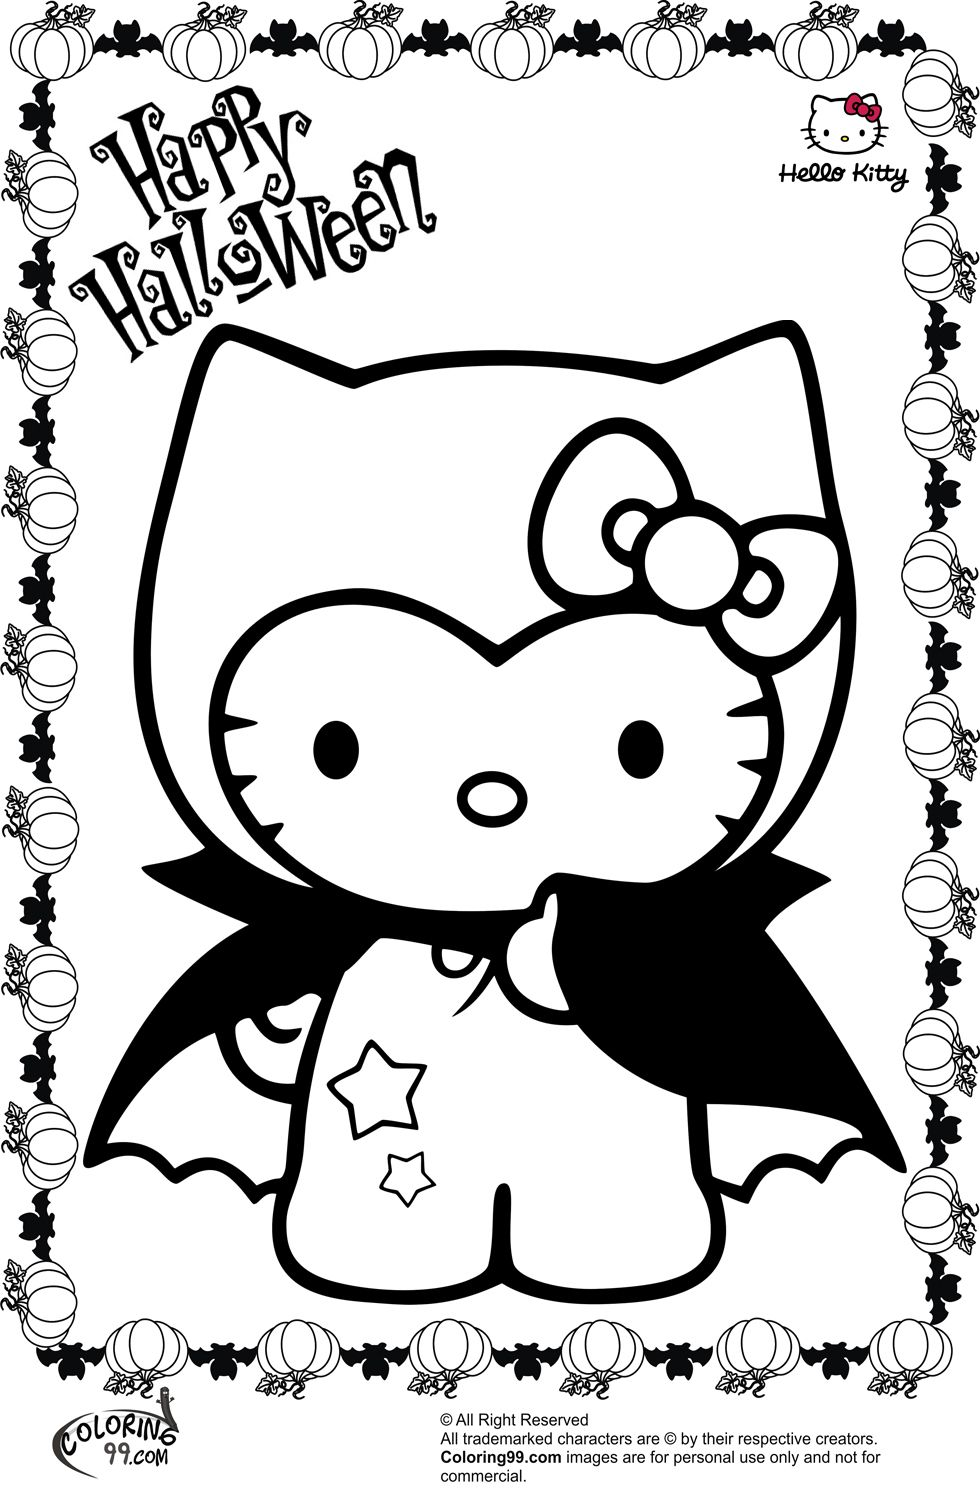 Hello Kitty Zombie Coloring Pages : Hello kitty vampire halloween coloring pages color